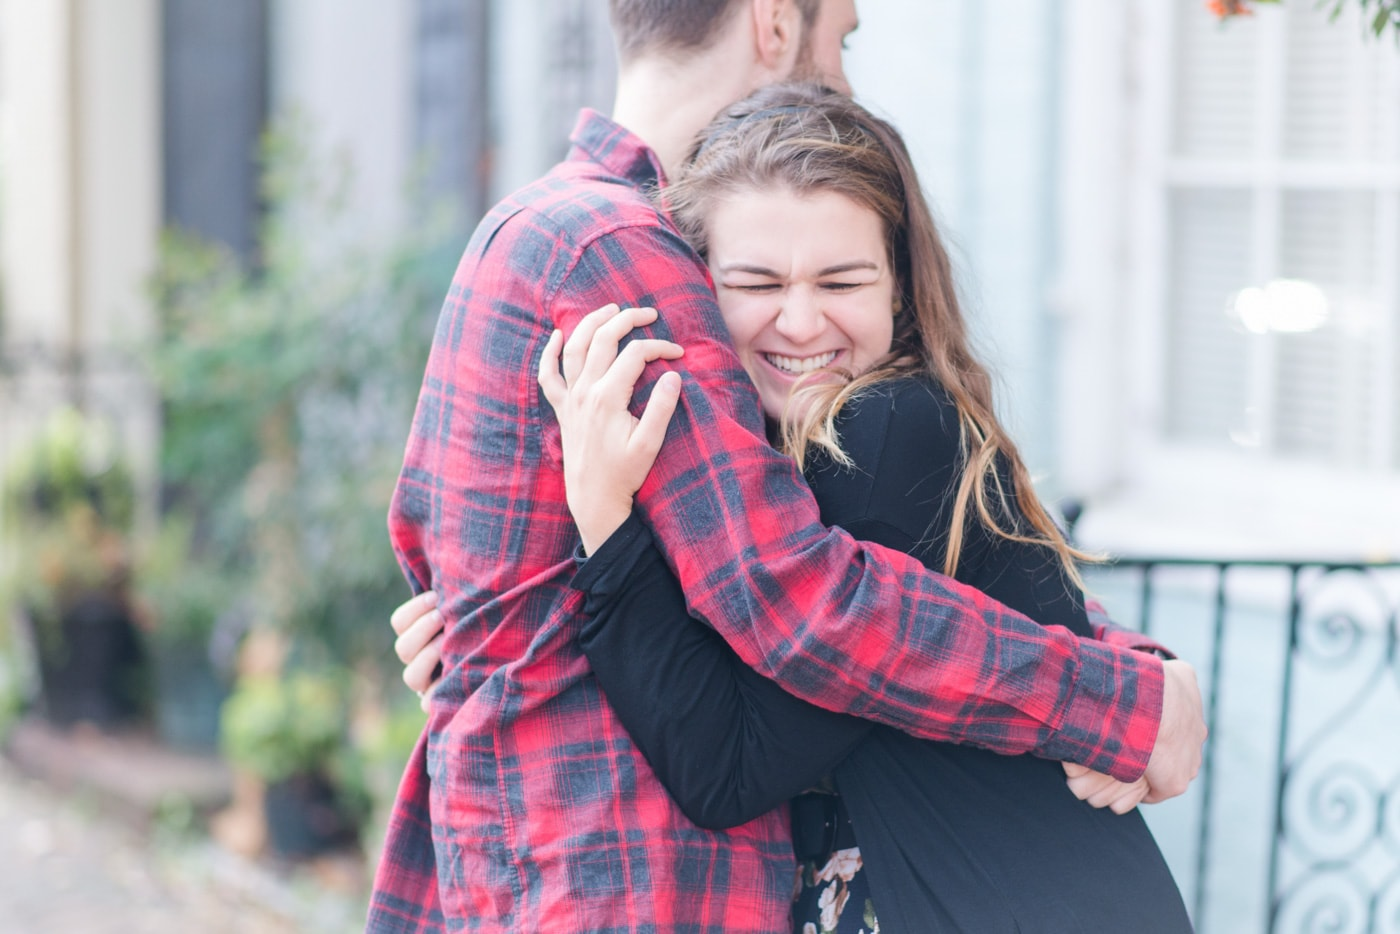 A young woman squeezes her boyfriend in a tight hug on the streets of Old Town Alexandria